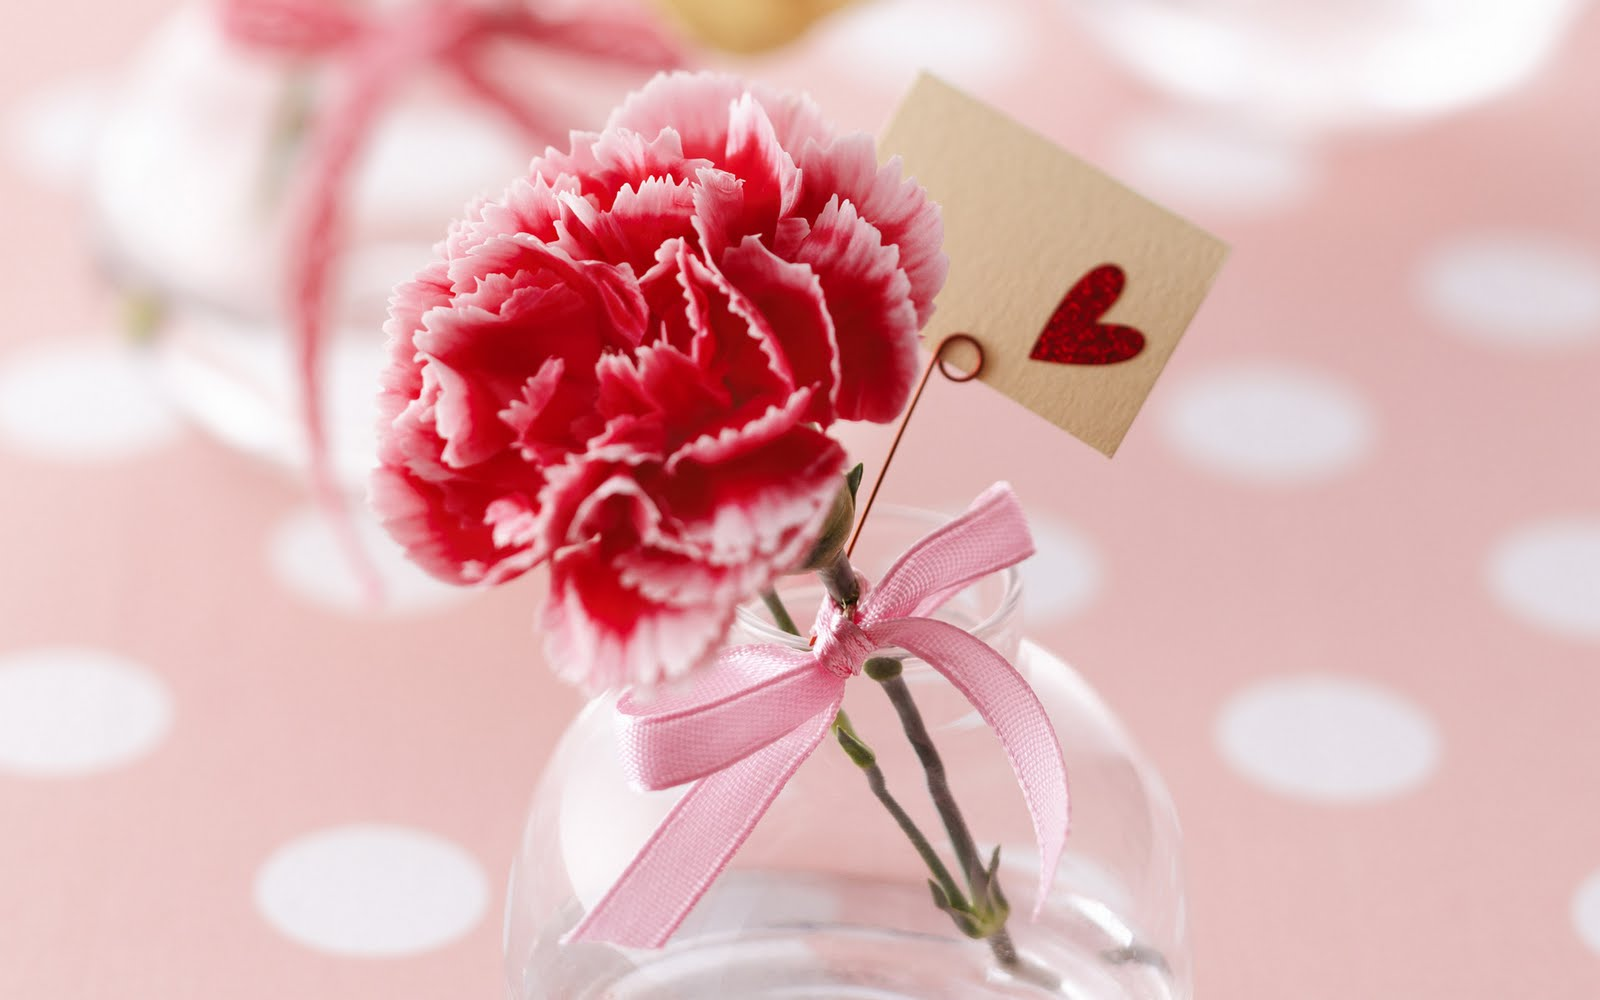 romantic flowers wallpapers flower - photo #3